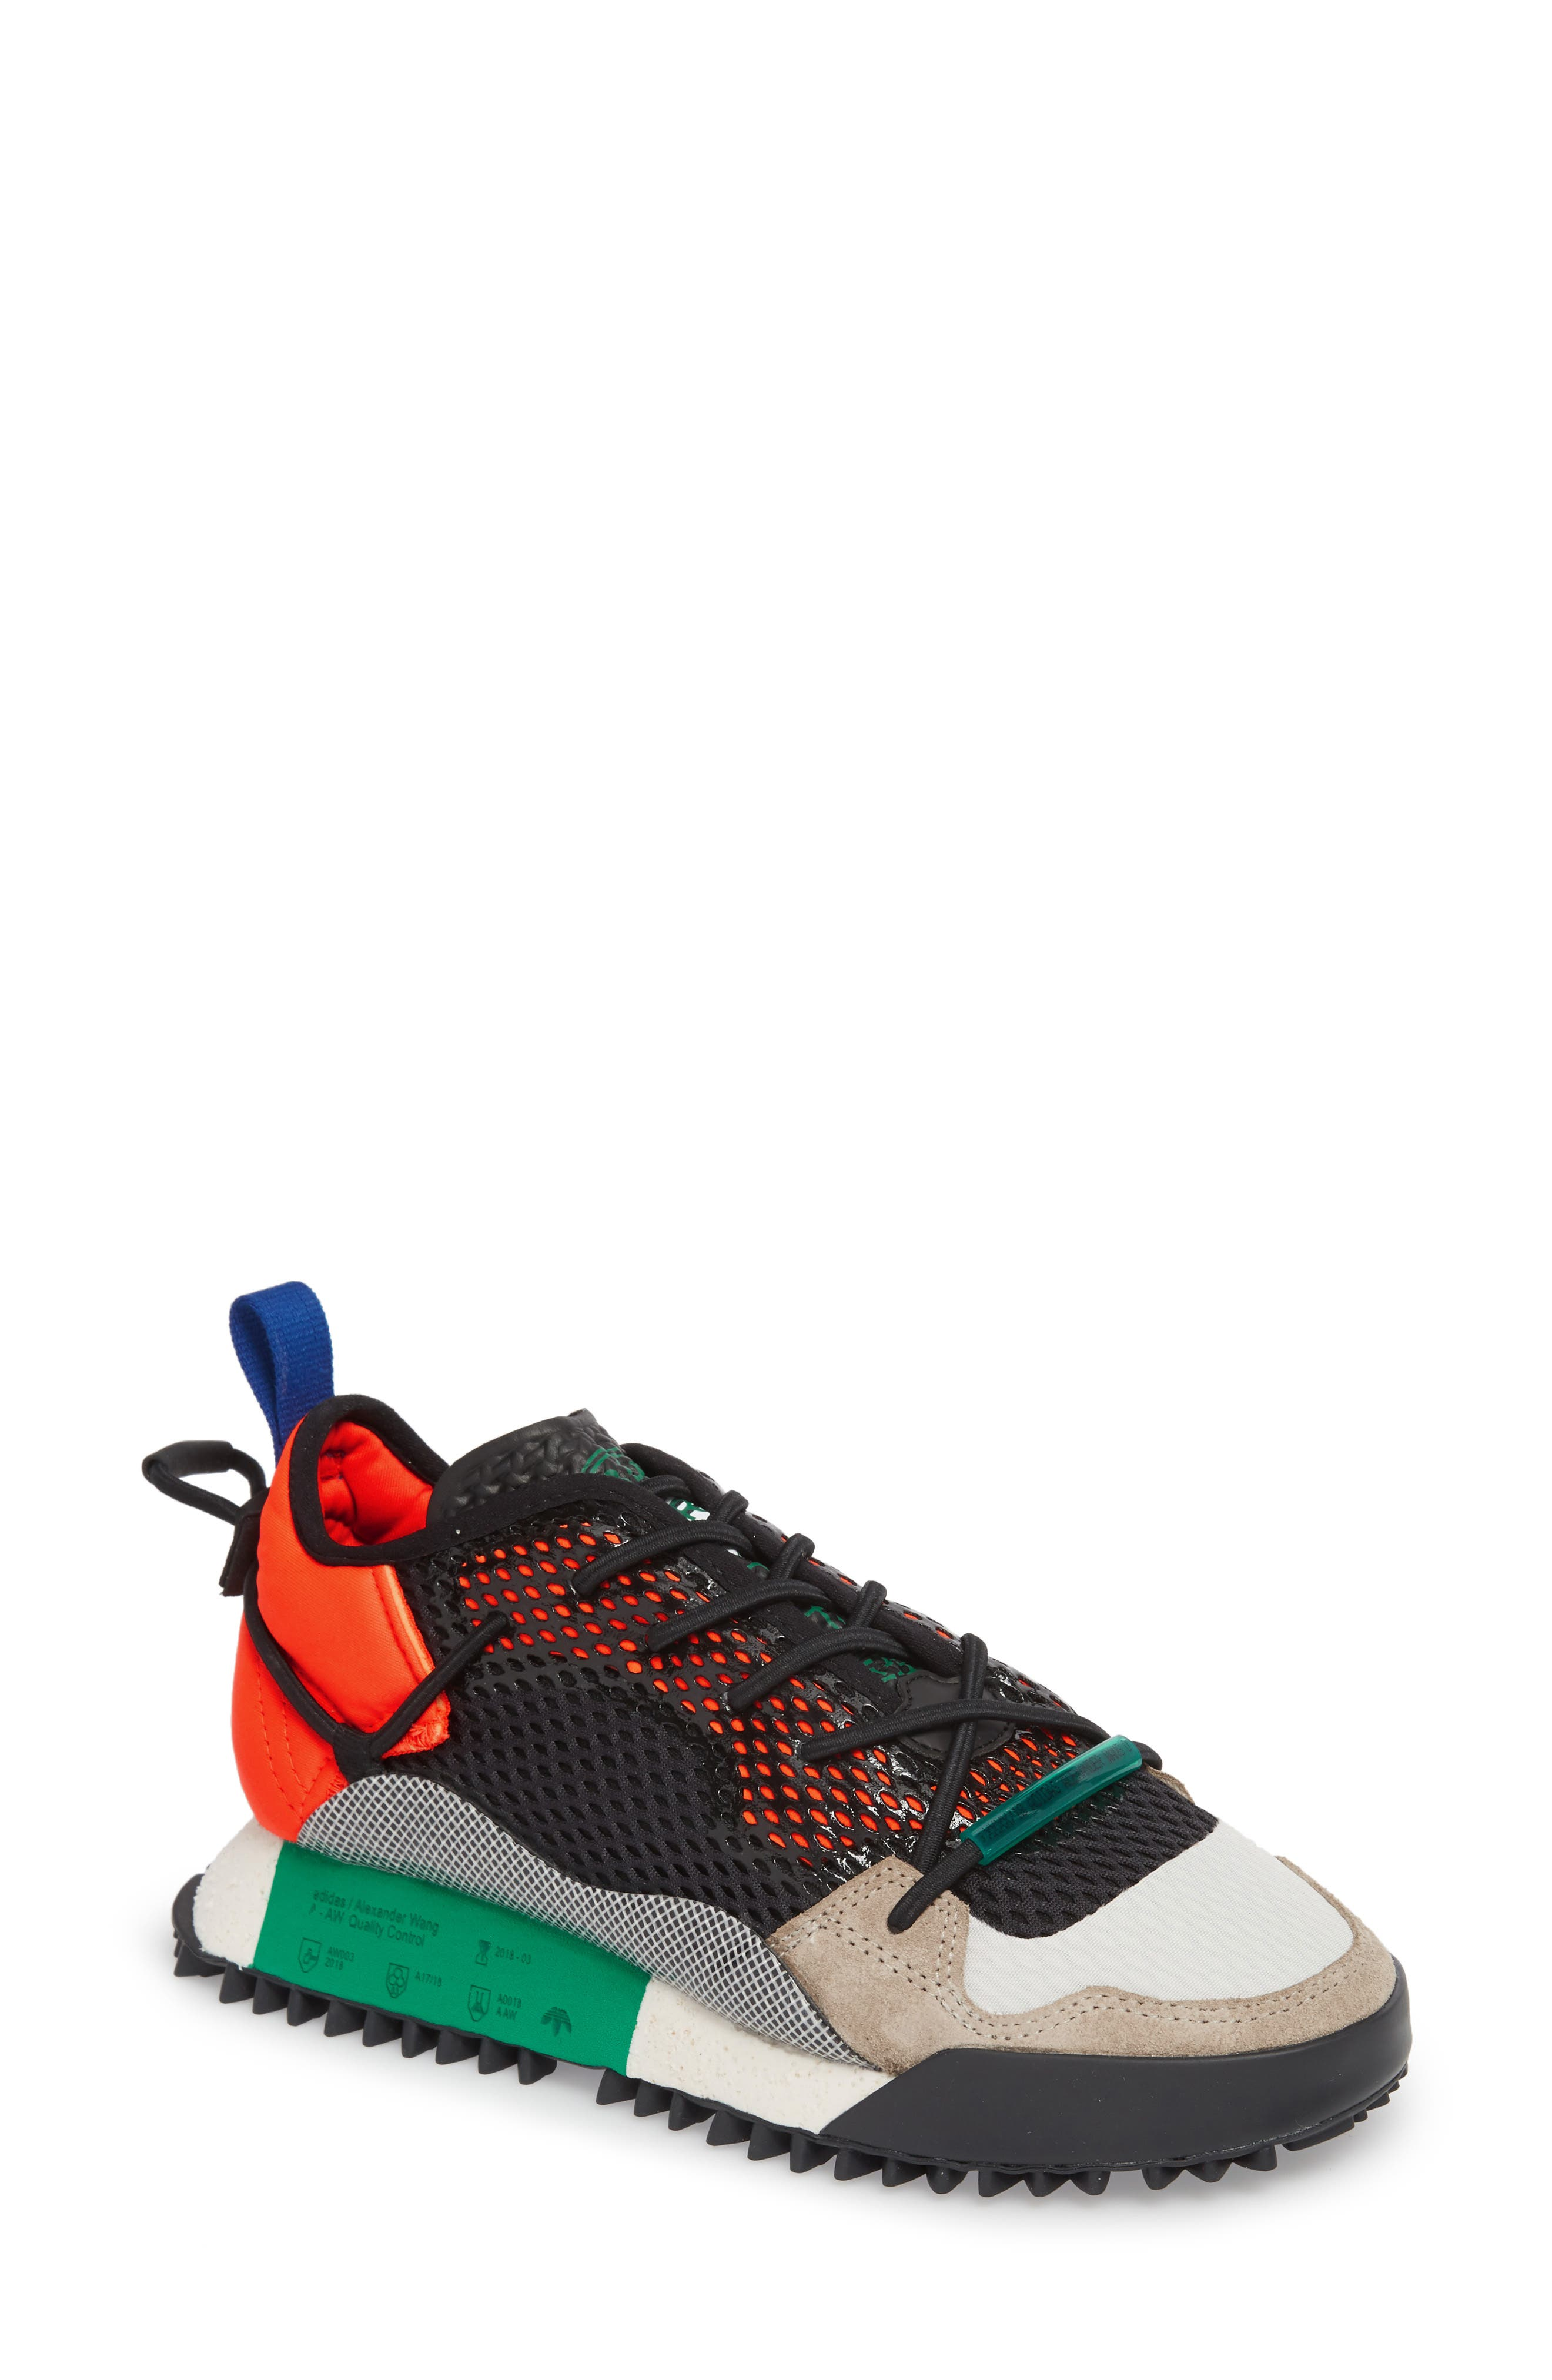 adidas x Alexander Wang Reissue Low Top Sneaker (Women)